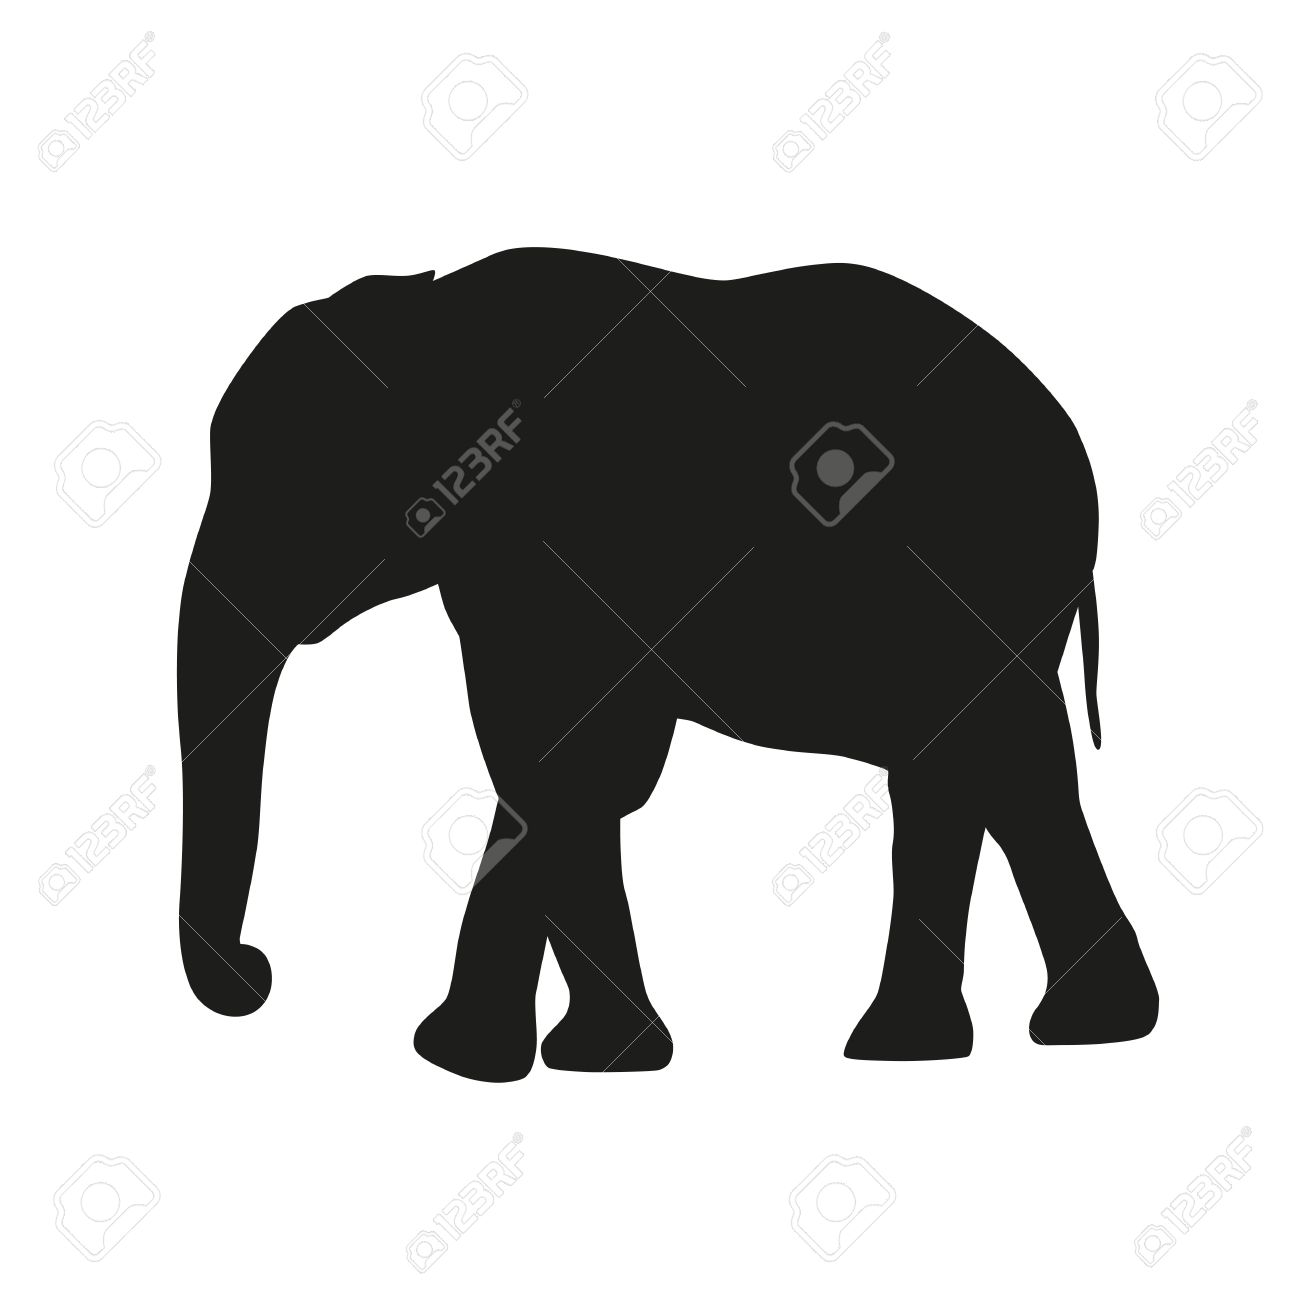 isolated elephant vector silhouette royalty free cliparts vectors rh 123rf com elephant vector images elephant vector file